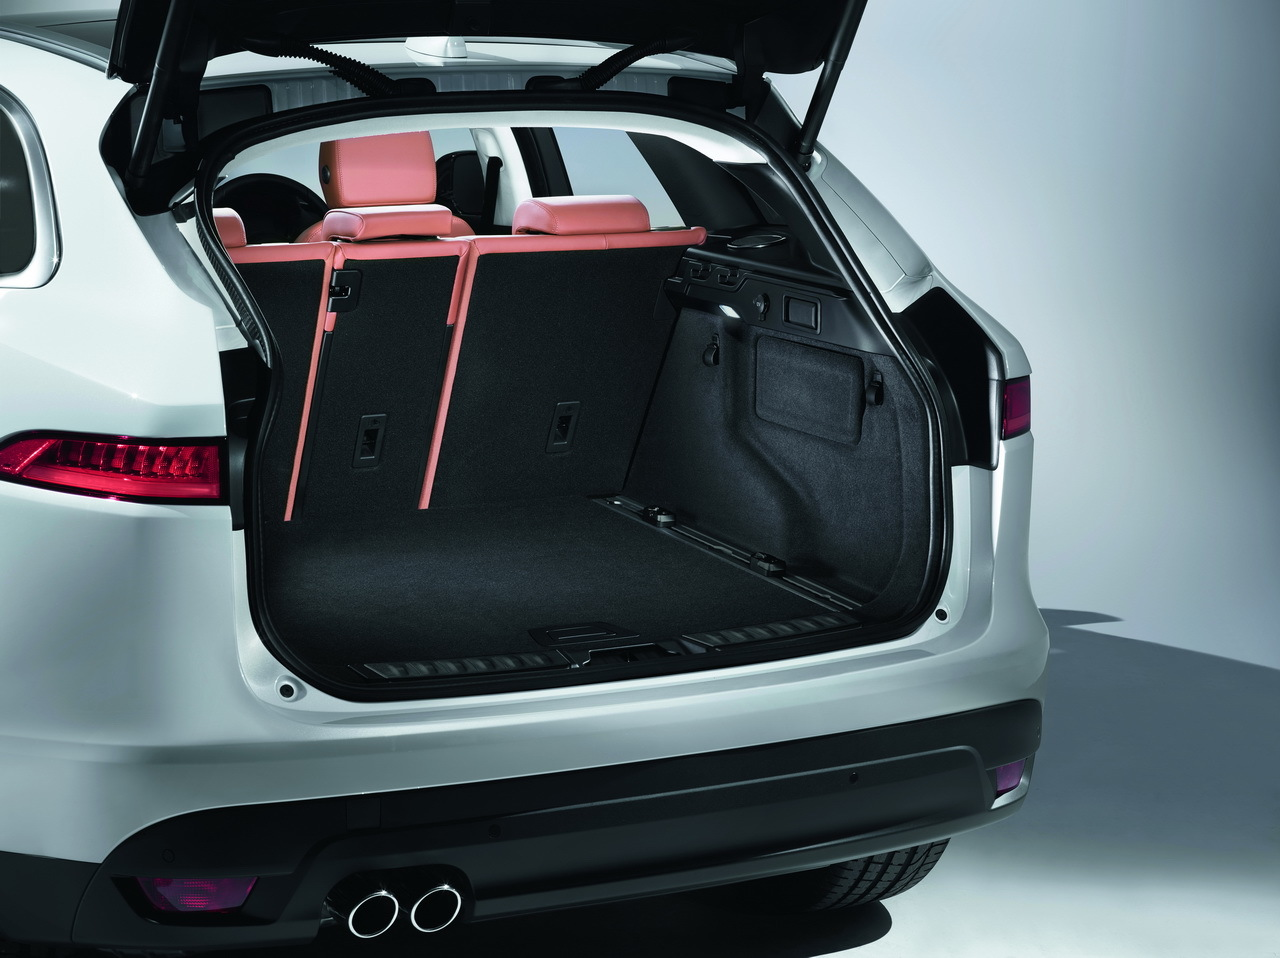 jaguar f pace 2016 toutes les photos du nouveau suv photo 33 l 39 argus. Black Bedroom Furniture Sets. Home Design Ideas